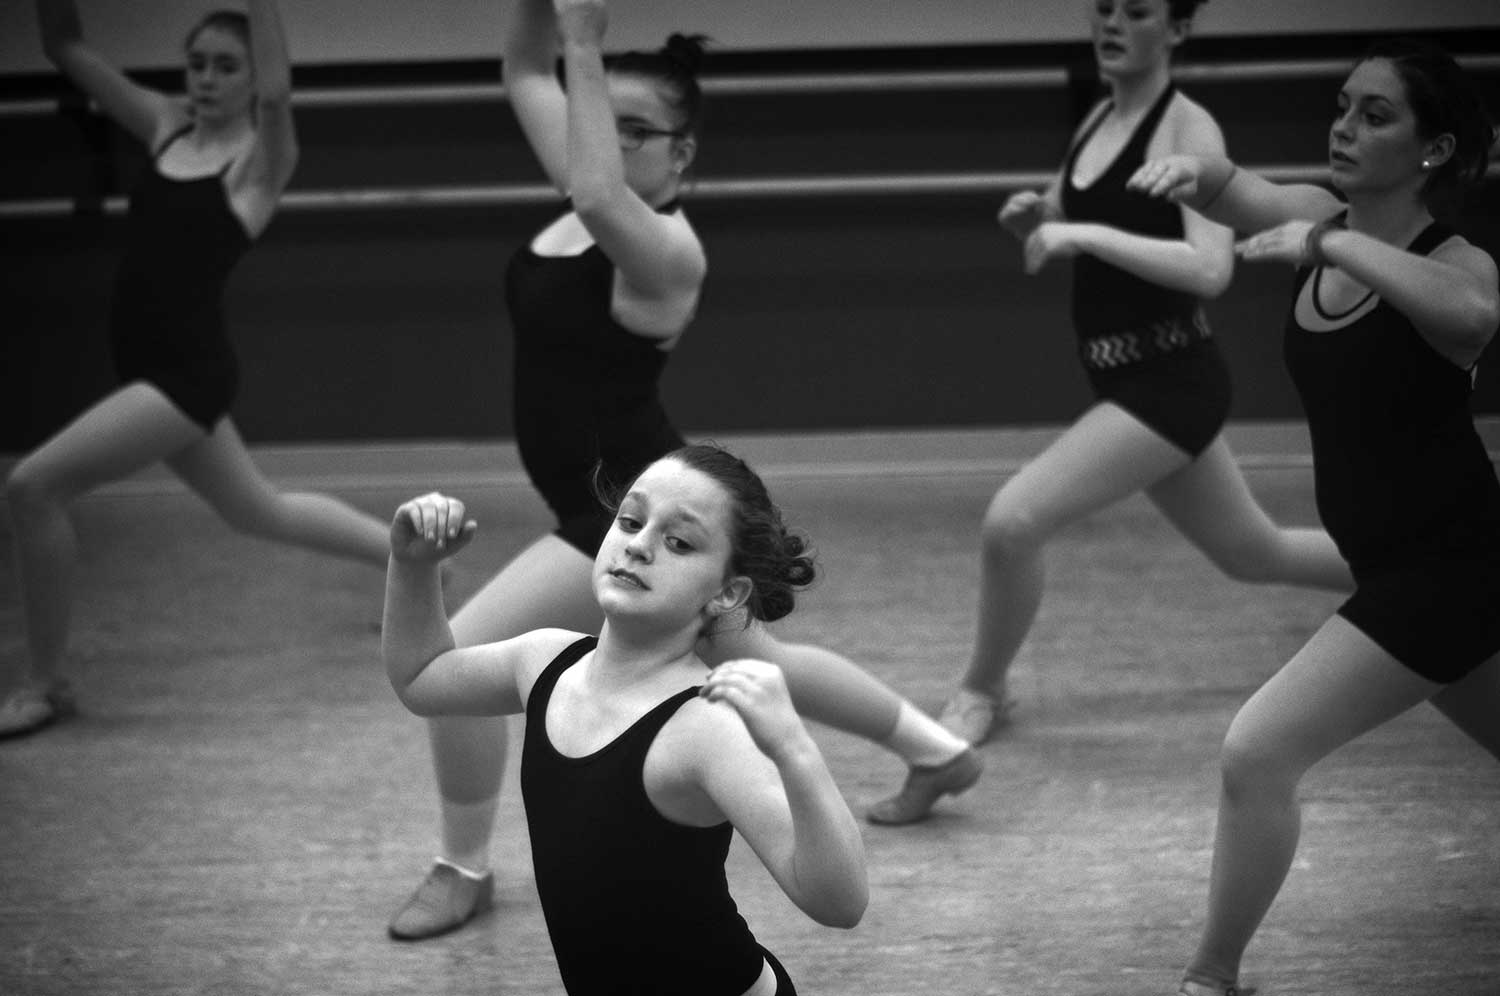 Ashley Tierney and her fellow classmates practice a routine. photo by Logan White - 2014